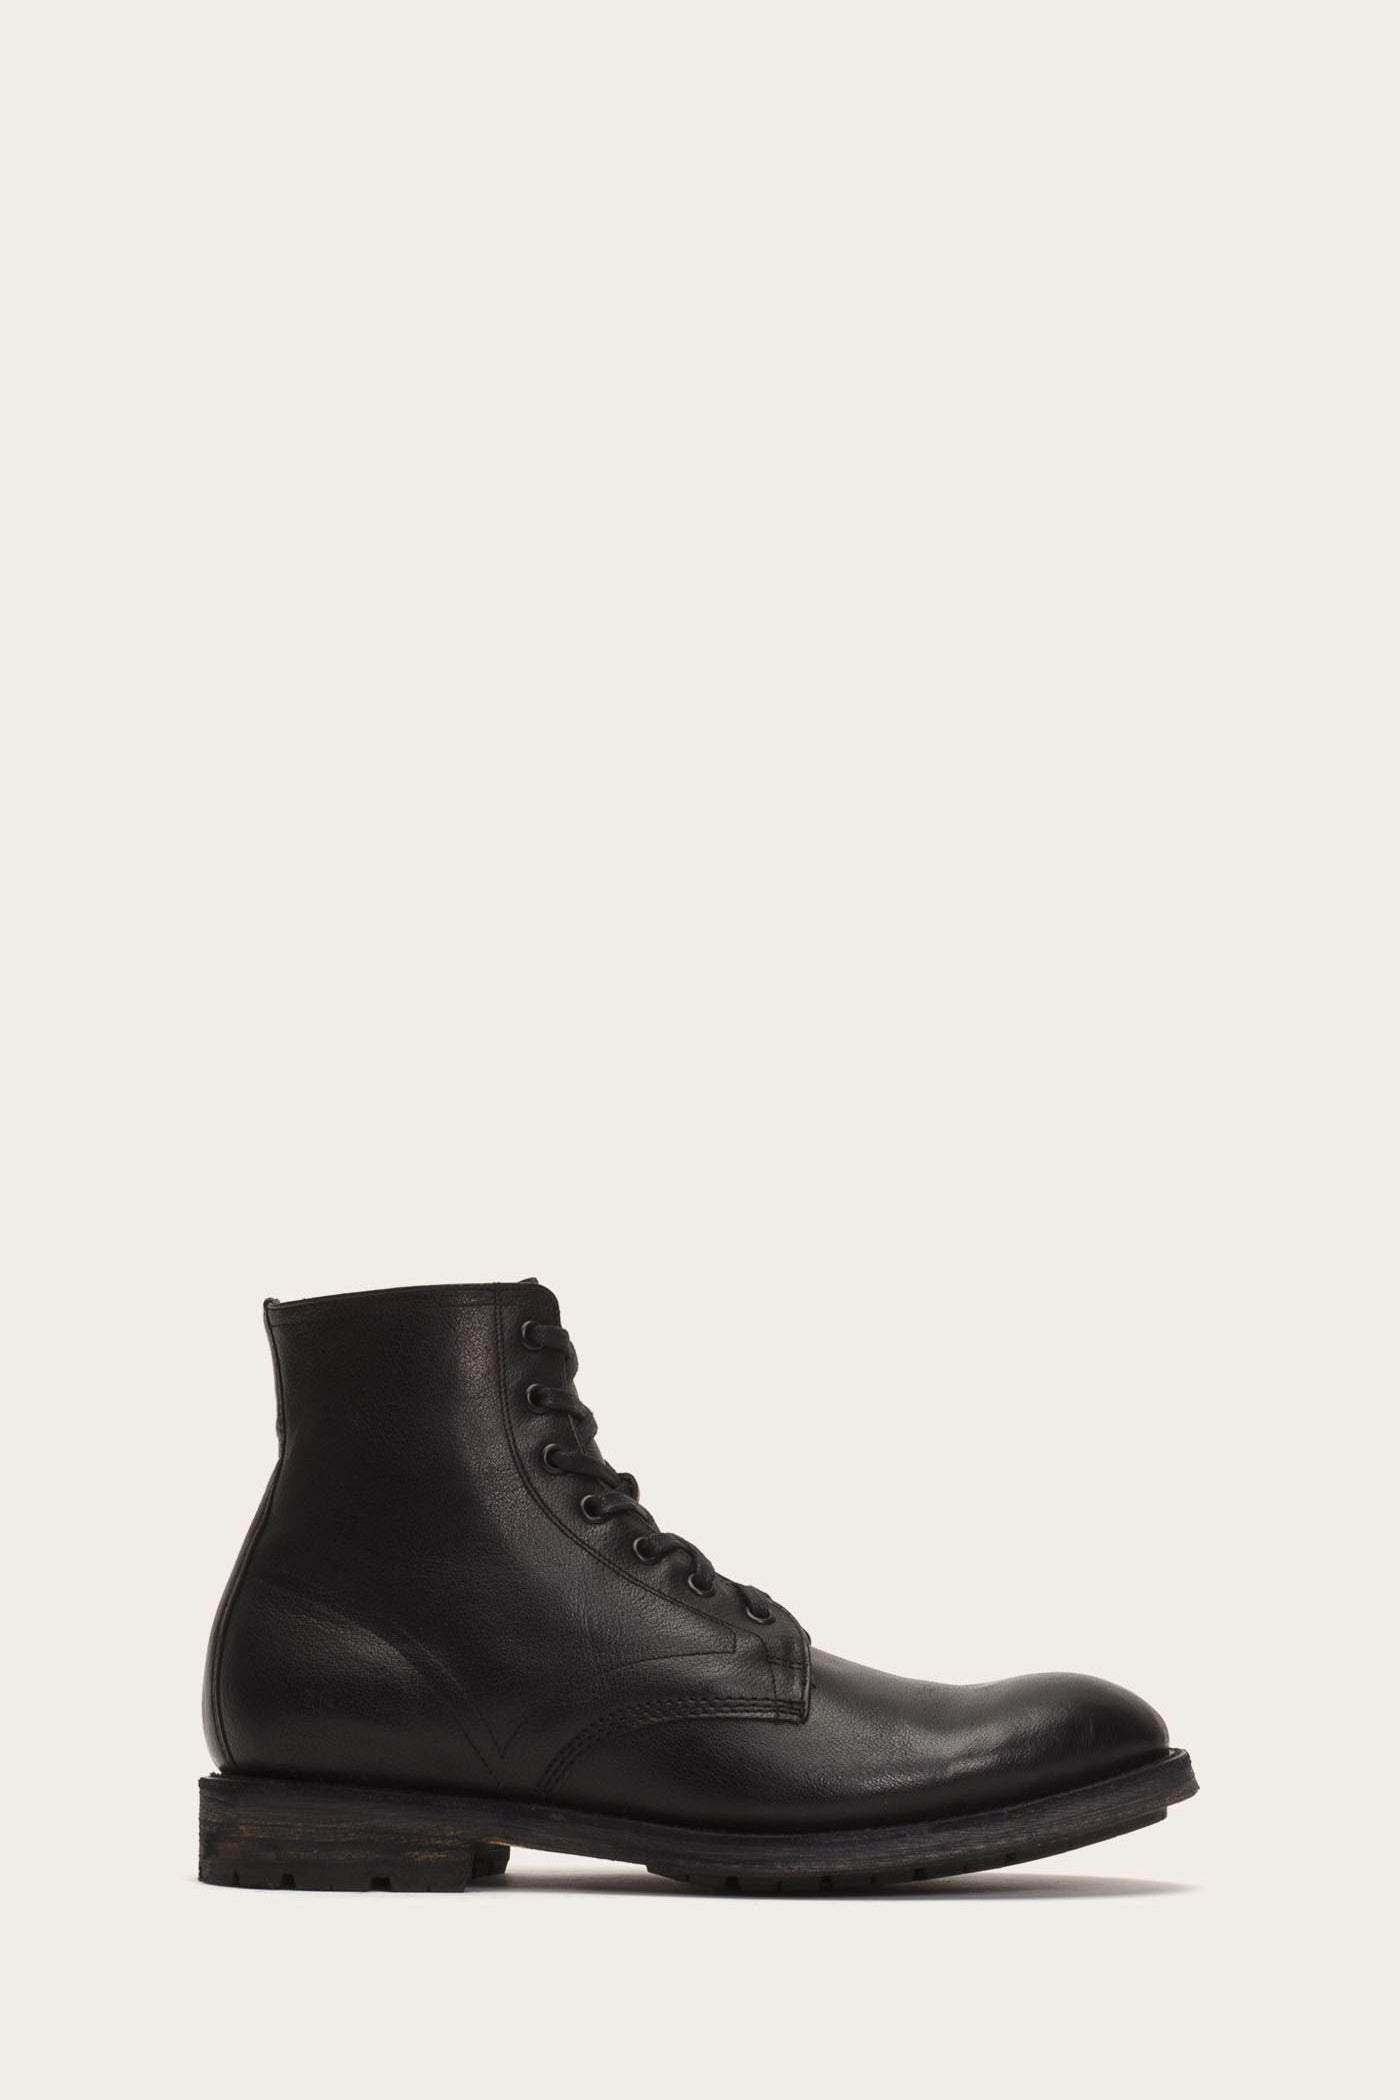 7ad88e91328 Oliver Lace Up   FRYE Since 1863